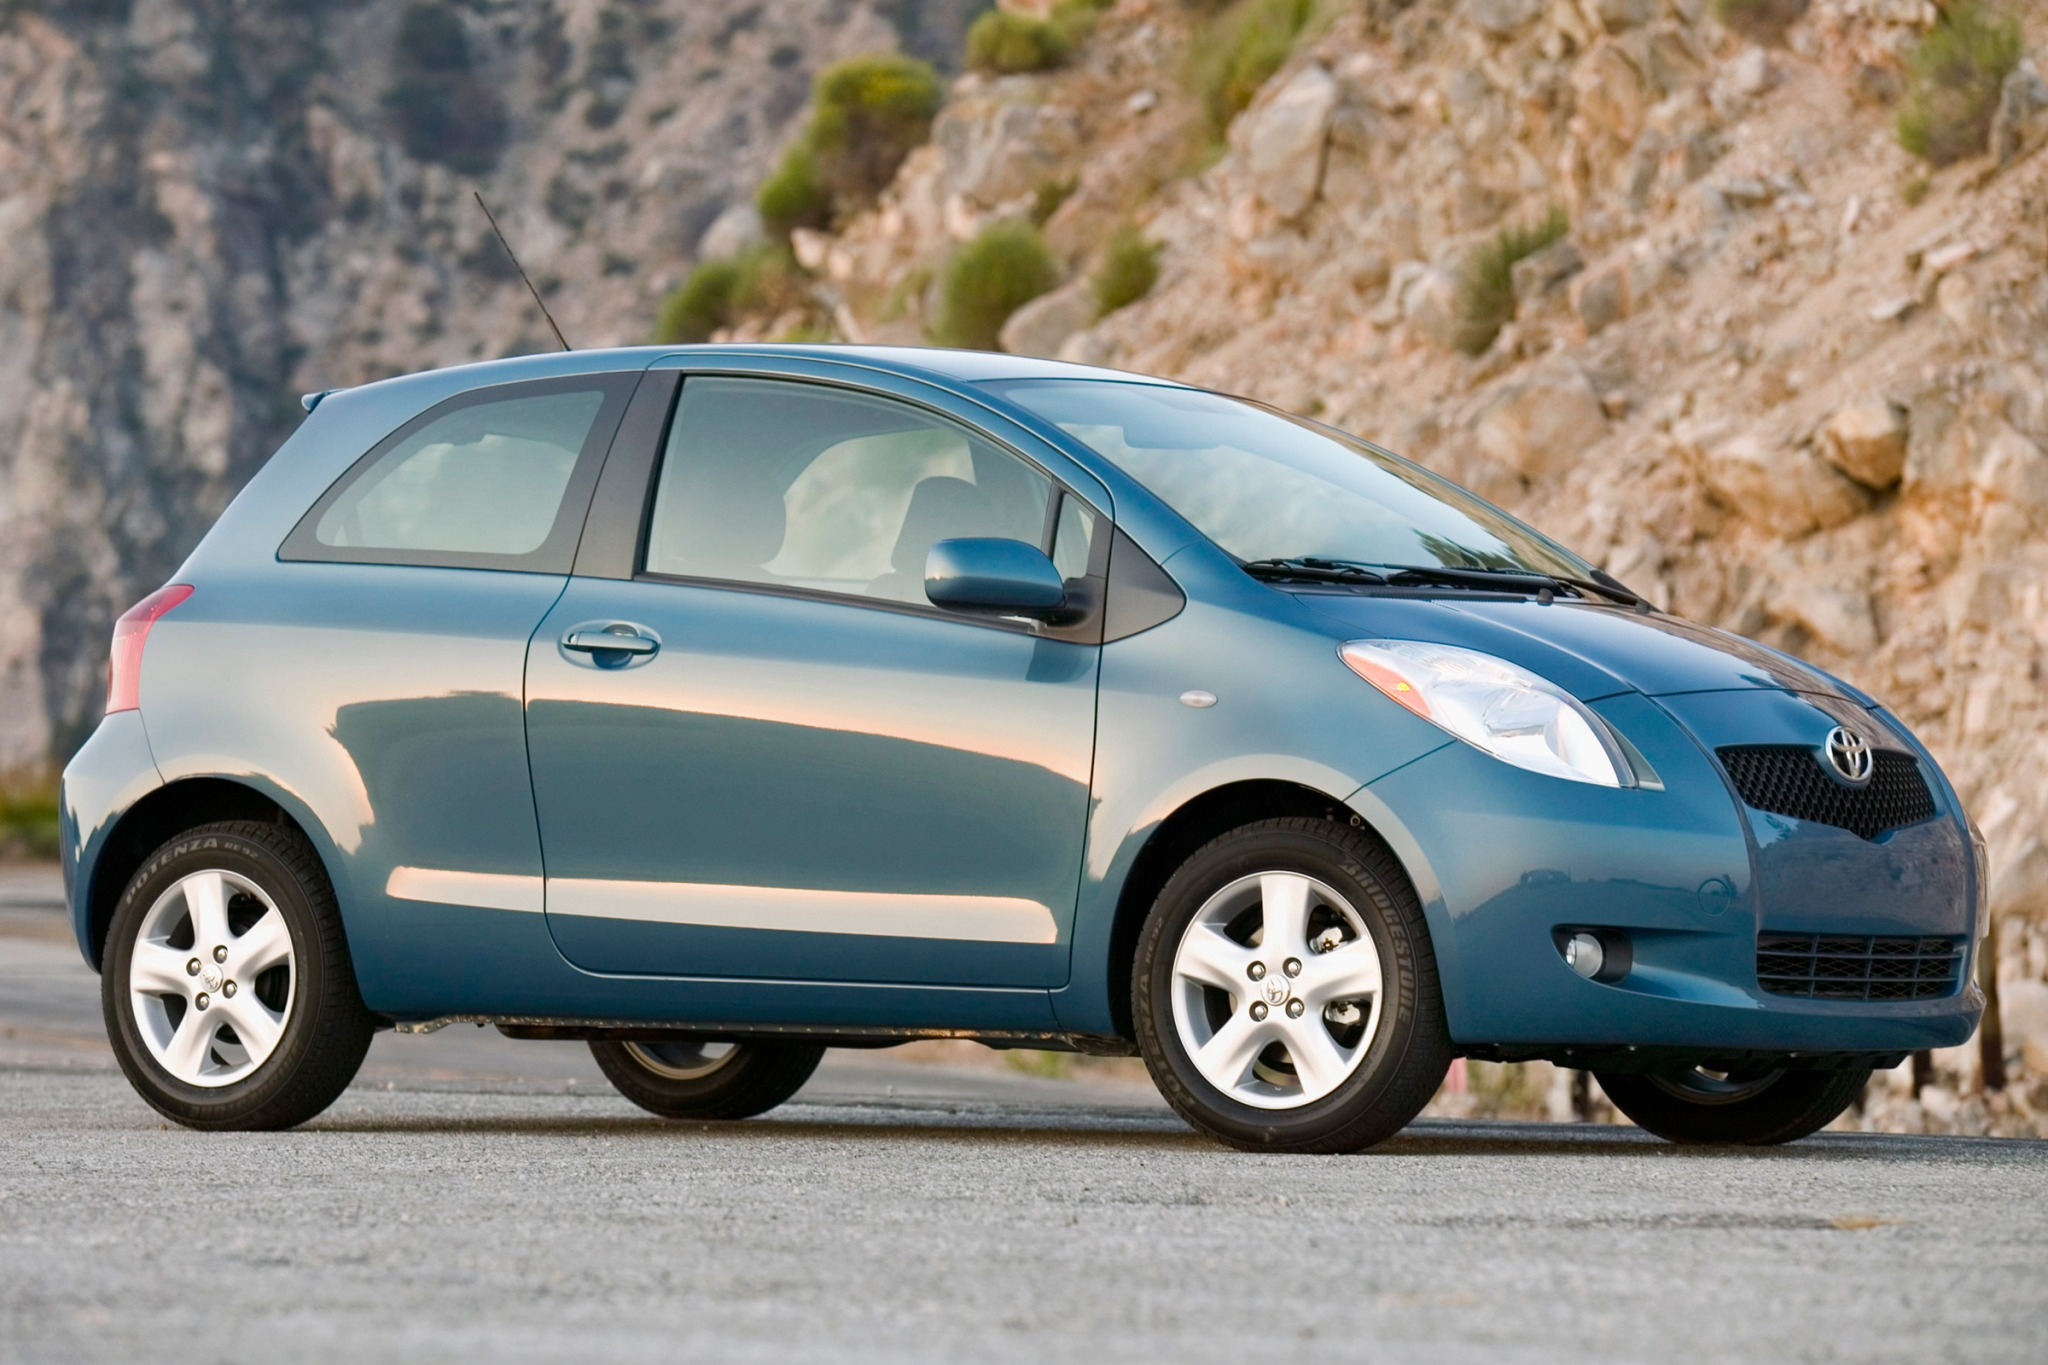 2007 toyota yaris trd parts specs image 2